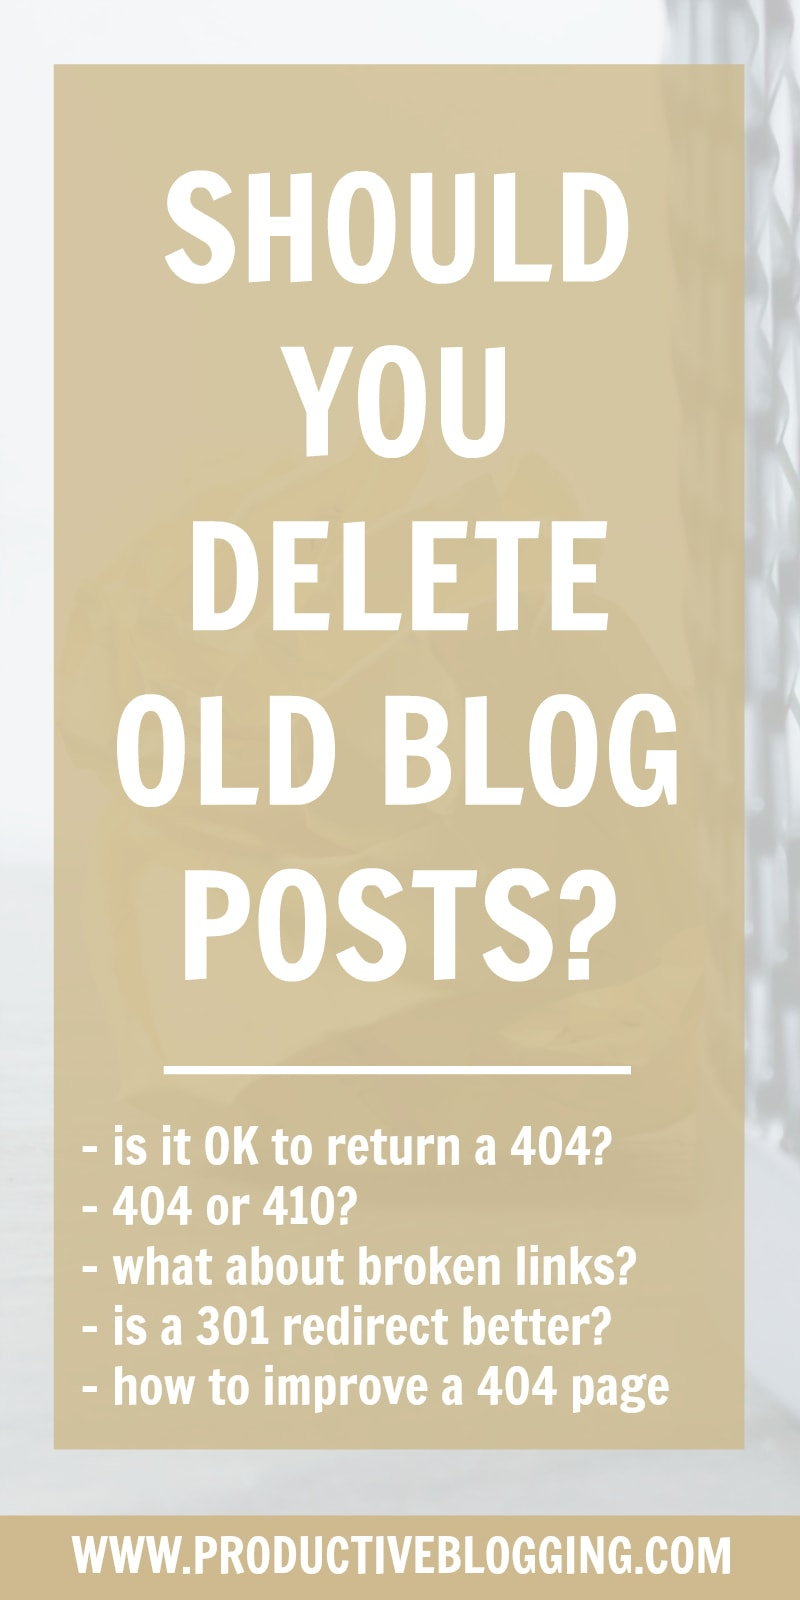 Is it bad to delete old blog posts? Or is it actually beneficial to your SEO and blog traffic to remove old content that does not deliver value? And is it ever OK to simply delete a post and allow it to return a 404 response code or is it better to do a 301 redirect? In this guide to deleting old blog posts I explain all! #evergreencontent #thincontent #404notfound #404error #301redirect #301redirects #brokenlinks #sitestructure #seo #seotips #whatgooglesays #bloggingtips #productiveblogging